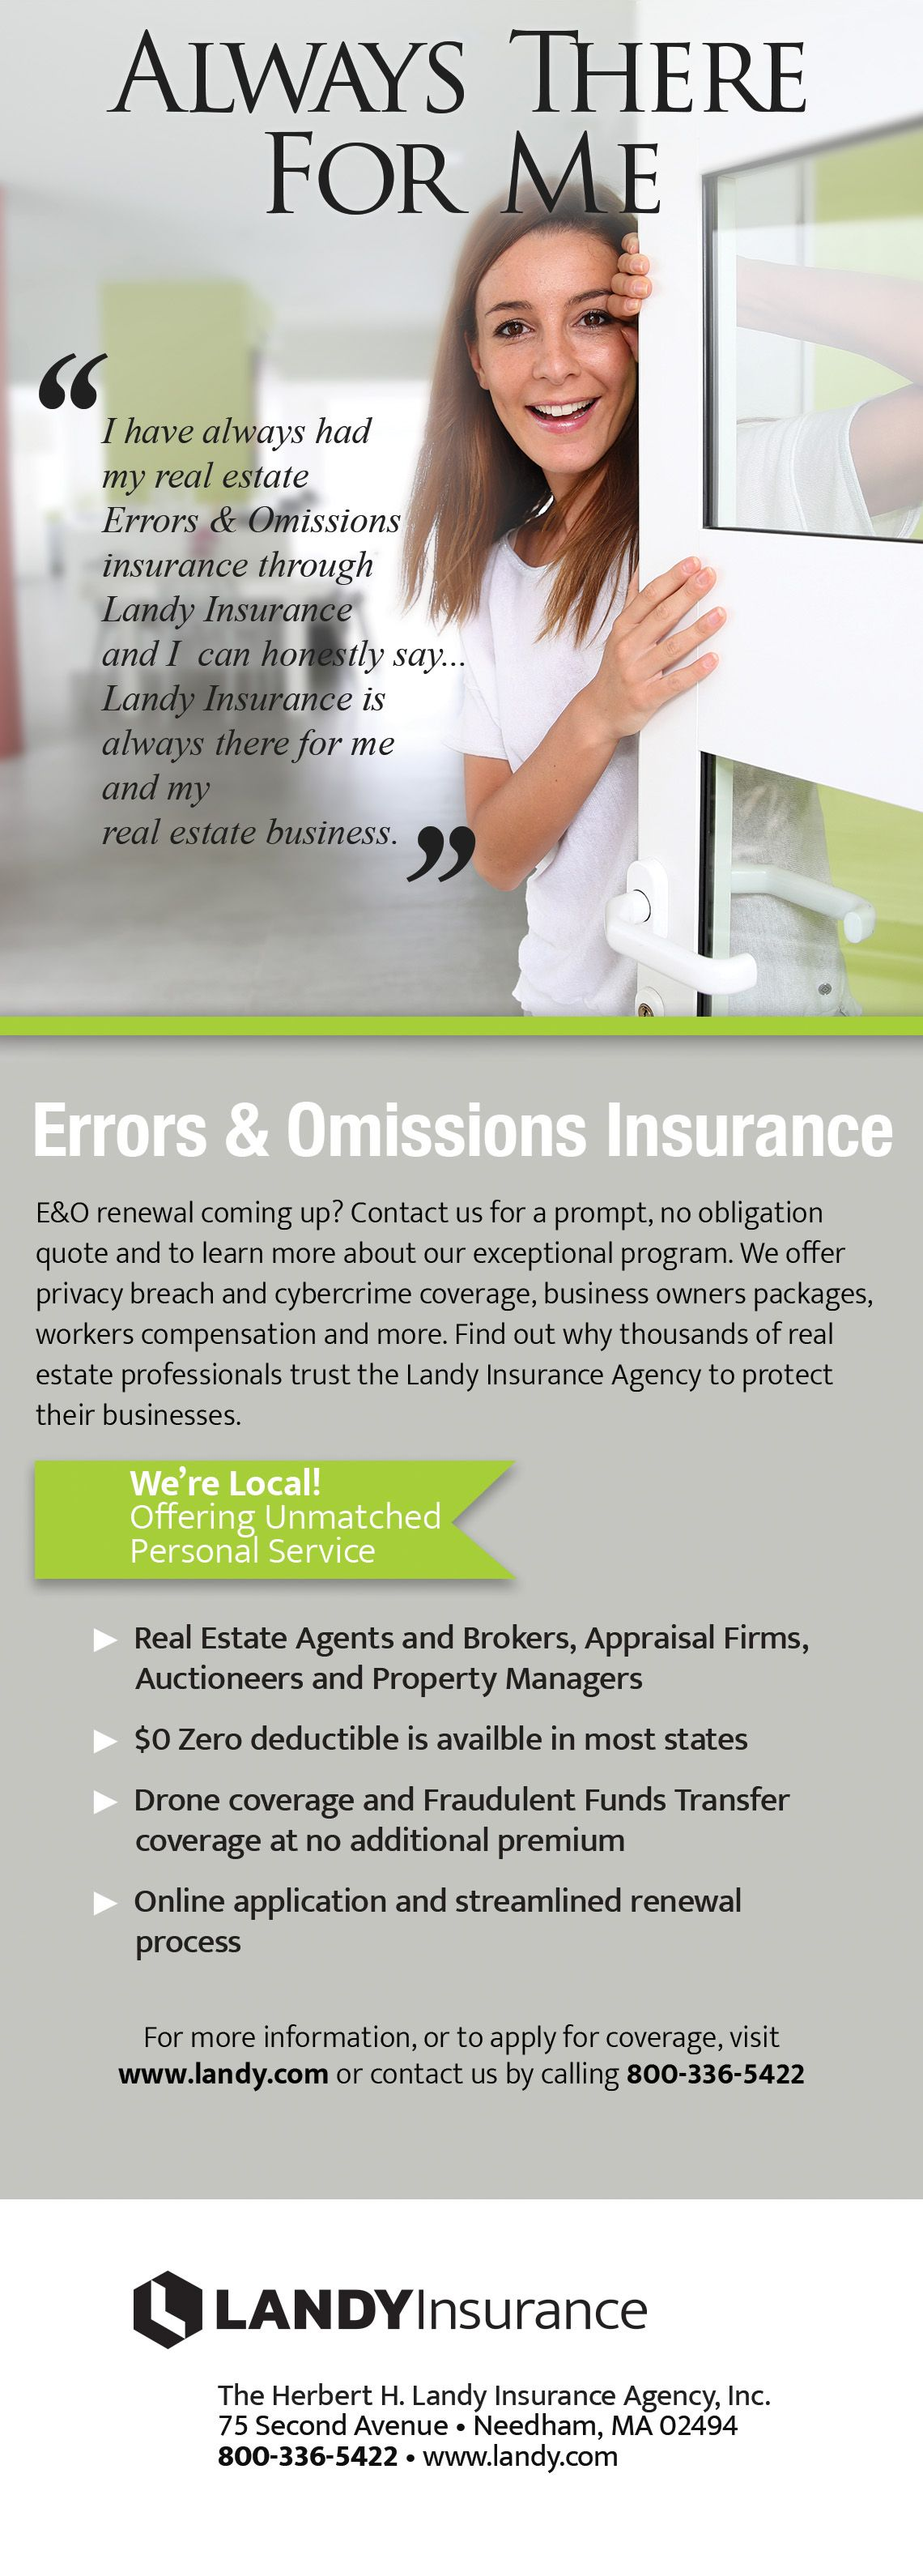 errors and omissions insurance cost for real estate agents